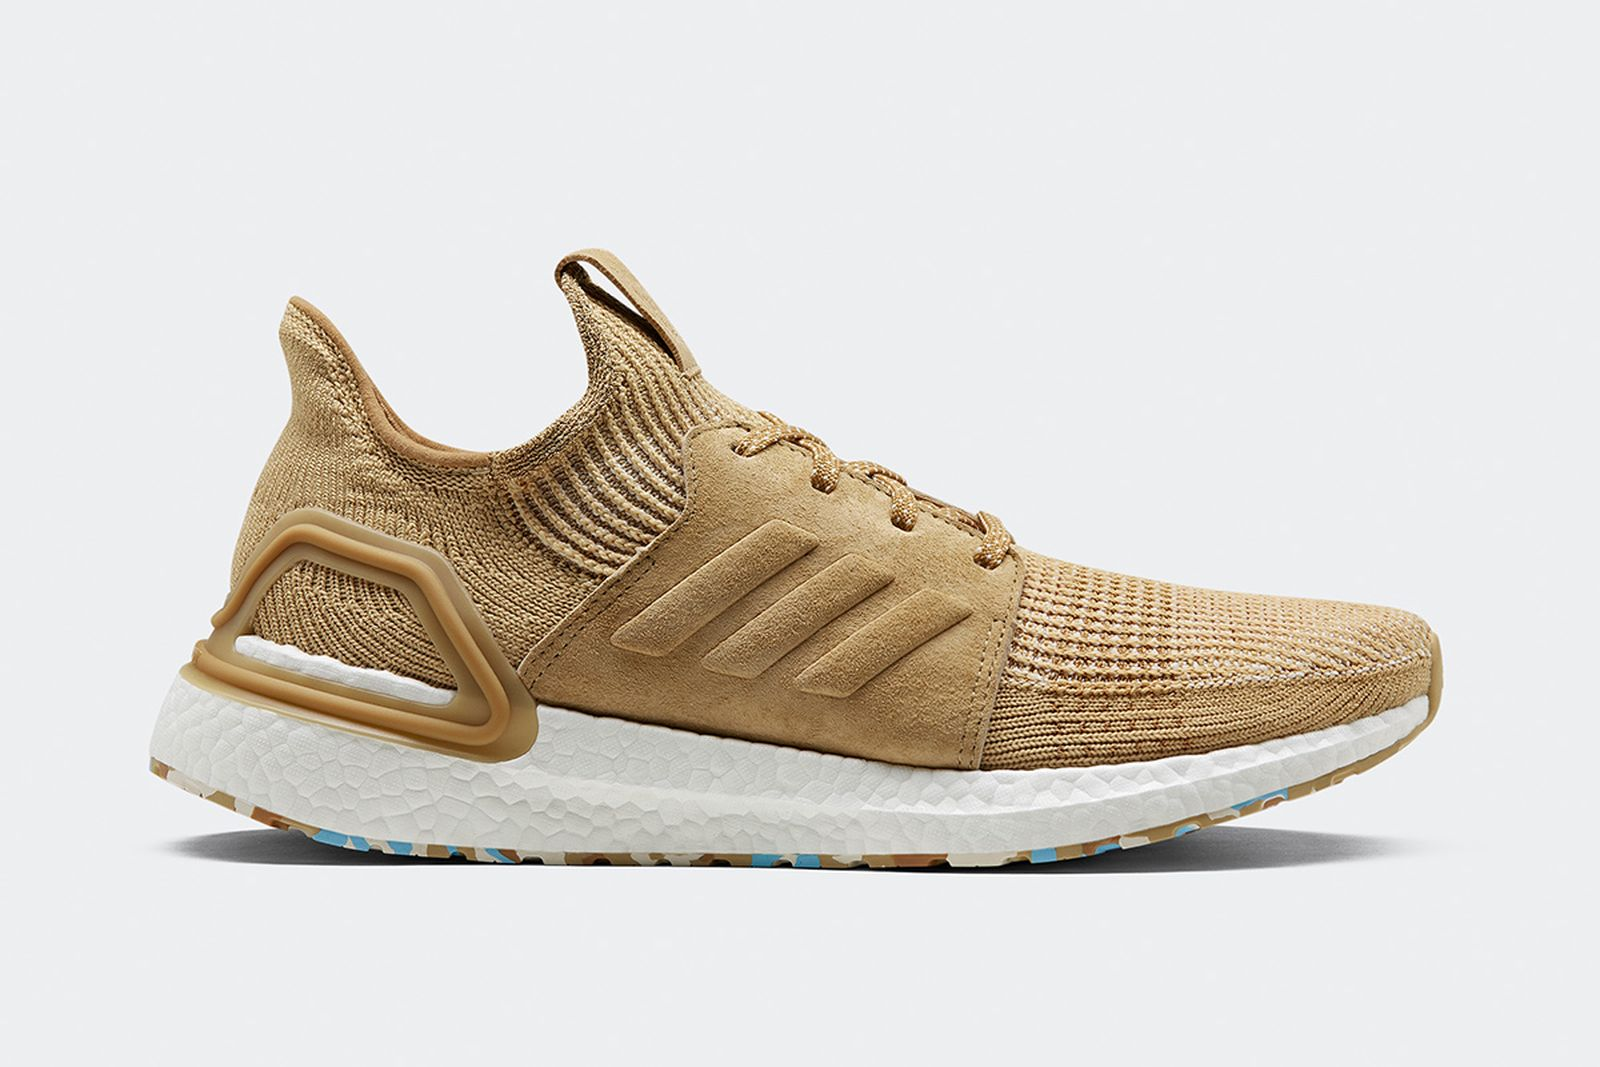 universal-works-adidas-ultraboost-19-release-date-price-02